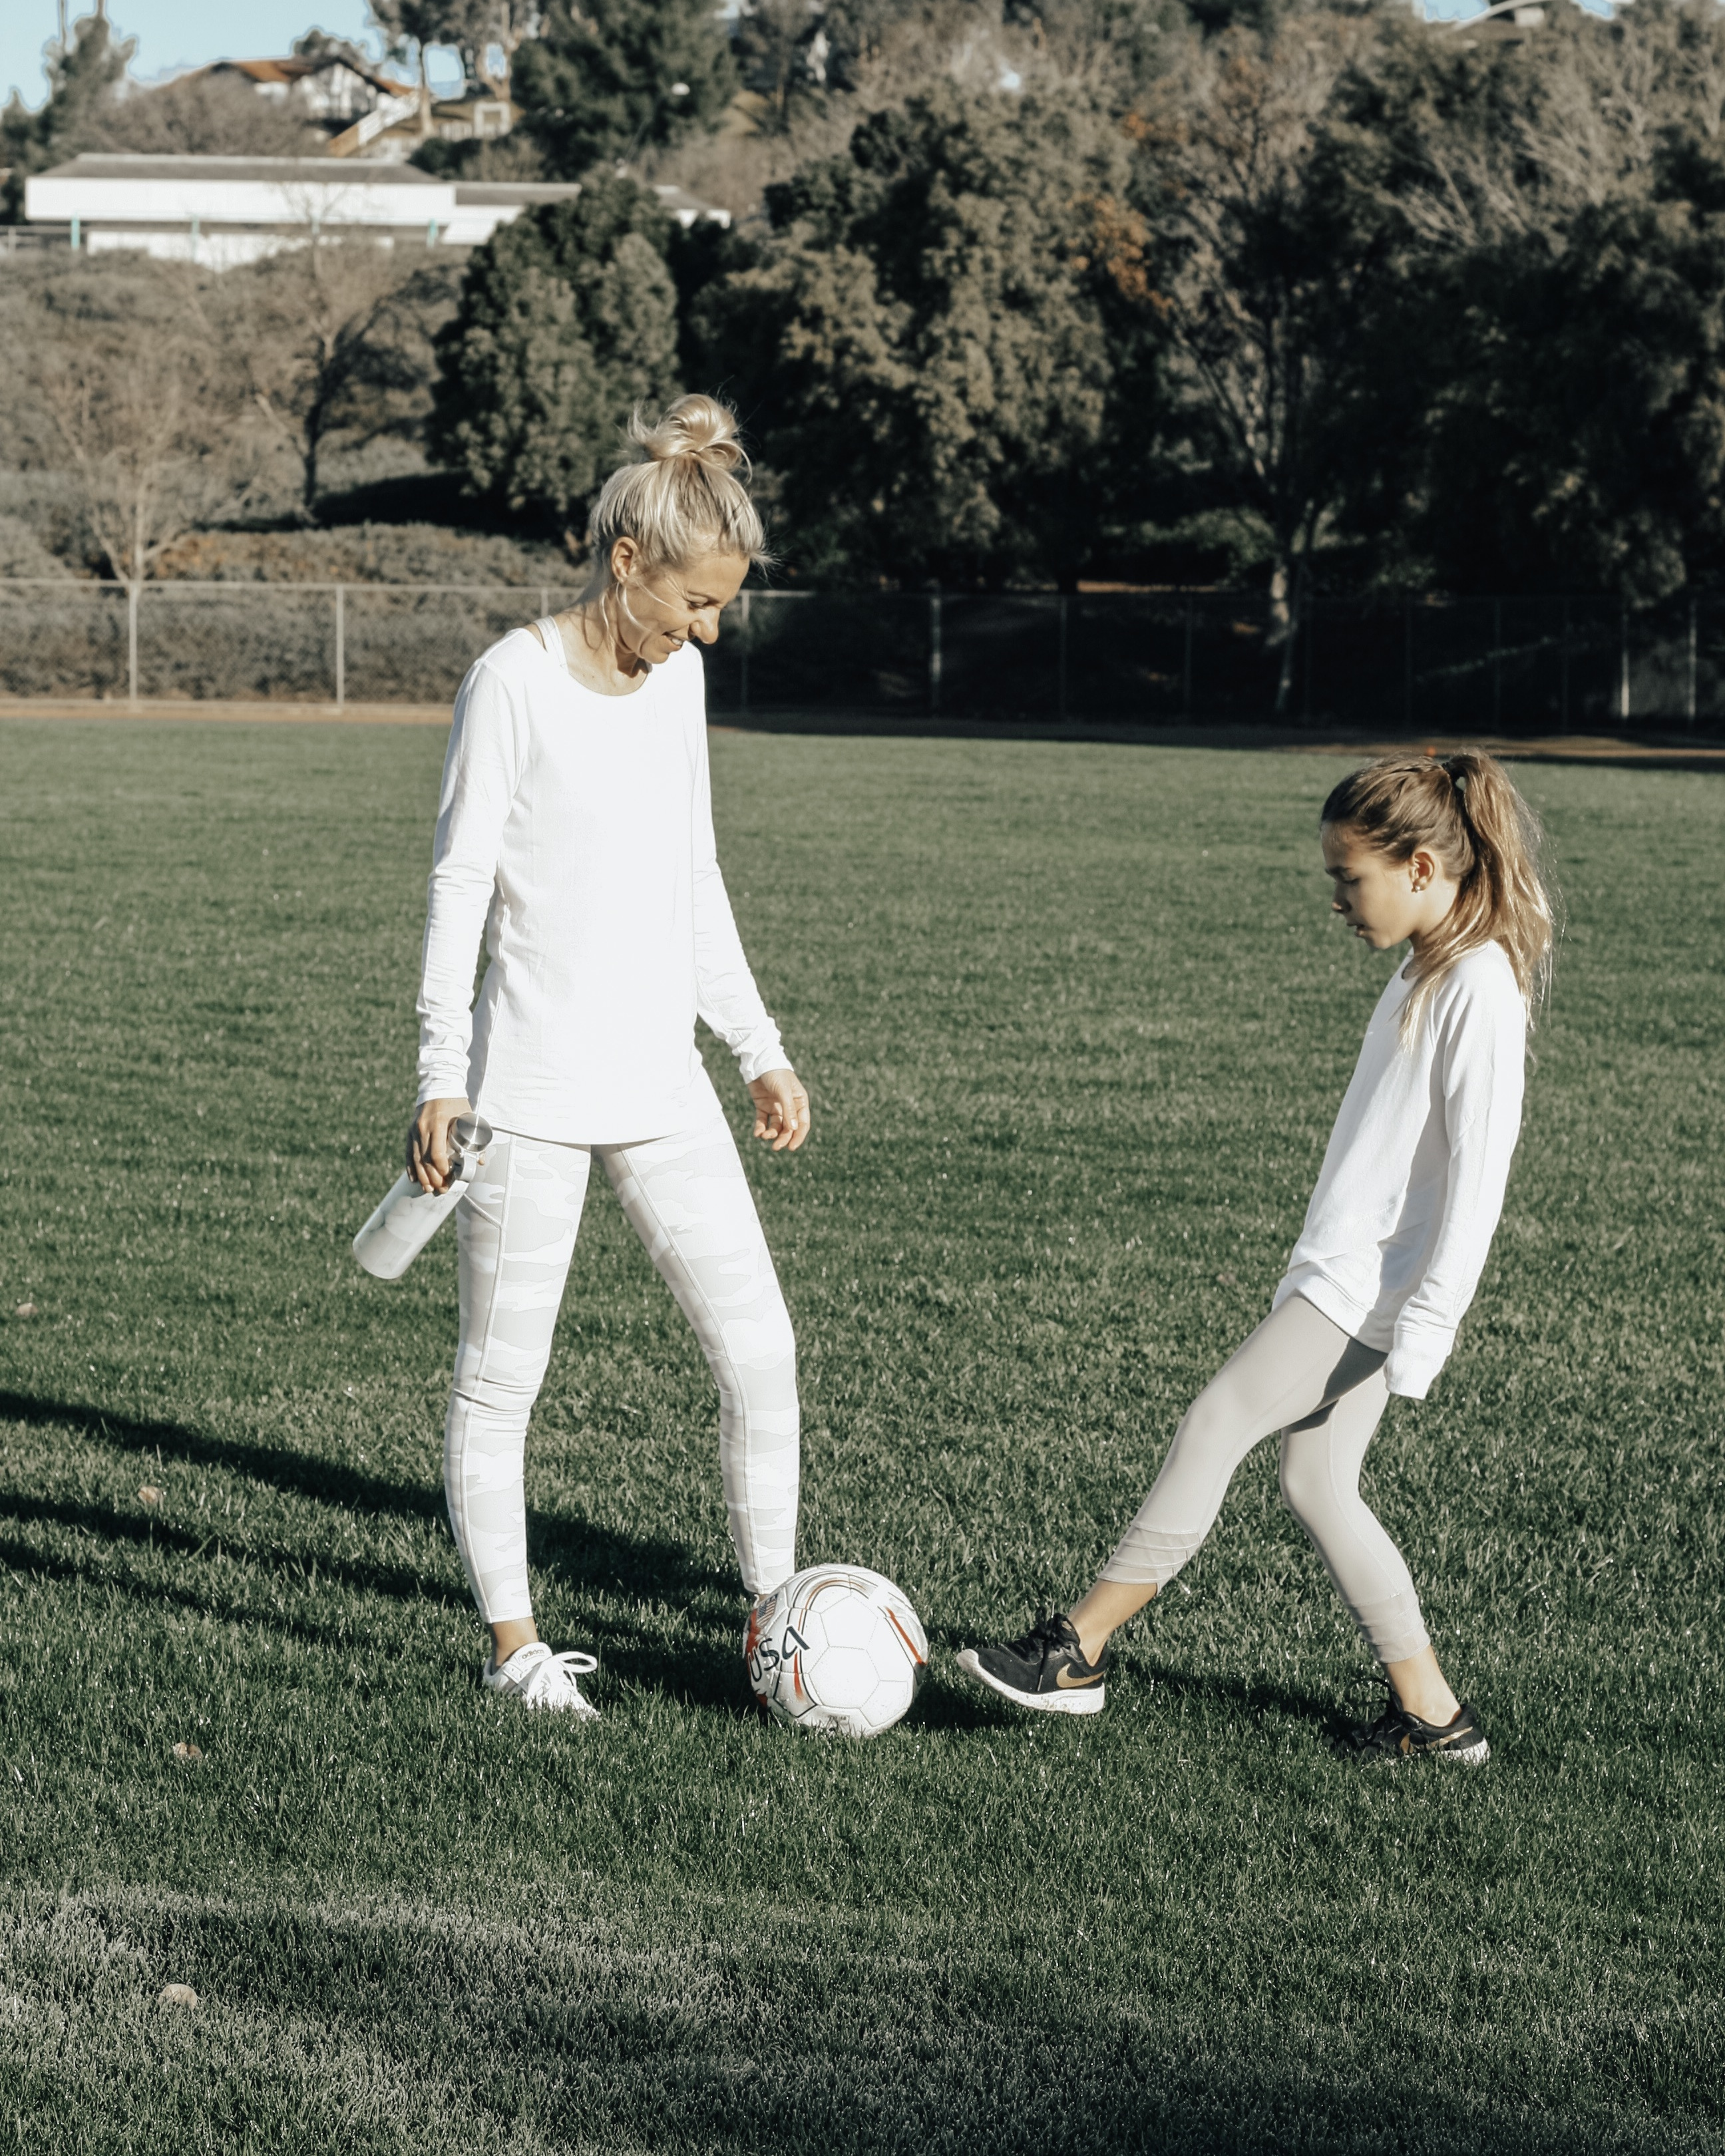 NATIONAL GIRLS & WOMEN IN SPORTS DAY WITH ATHLETA- Jaclyn De Leon Style + athleta girl + mommy and me + soccer + mom life + kid style + athletic wear + athleisure + mom style + supporting our children in sports